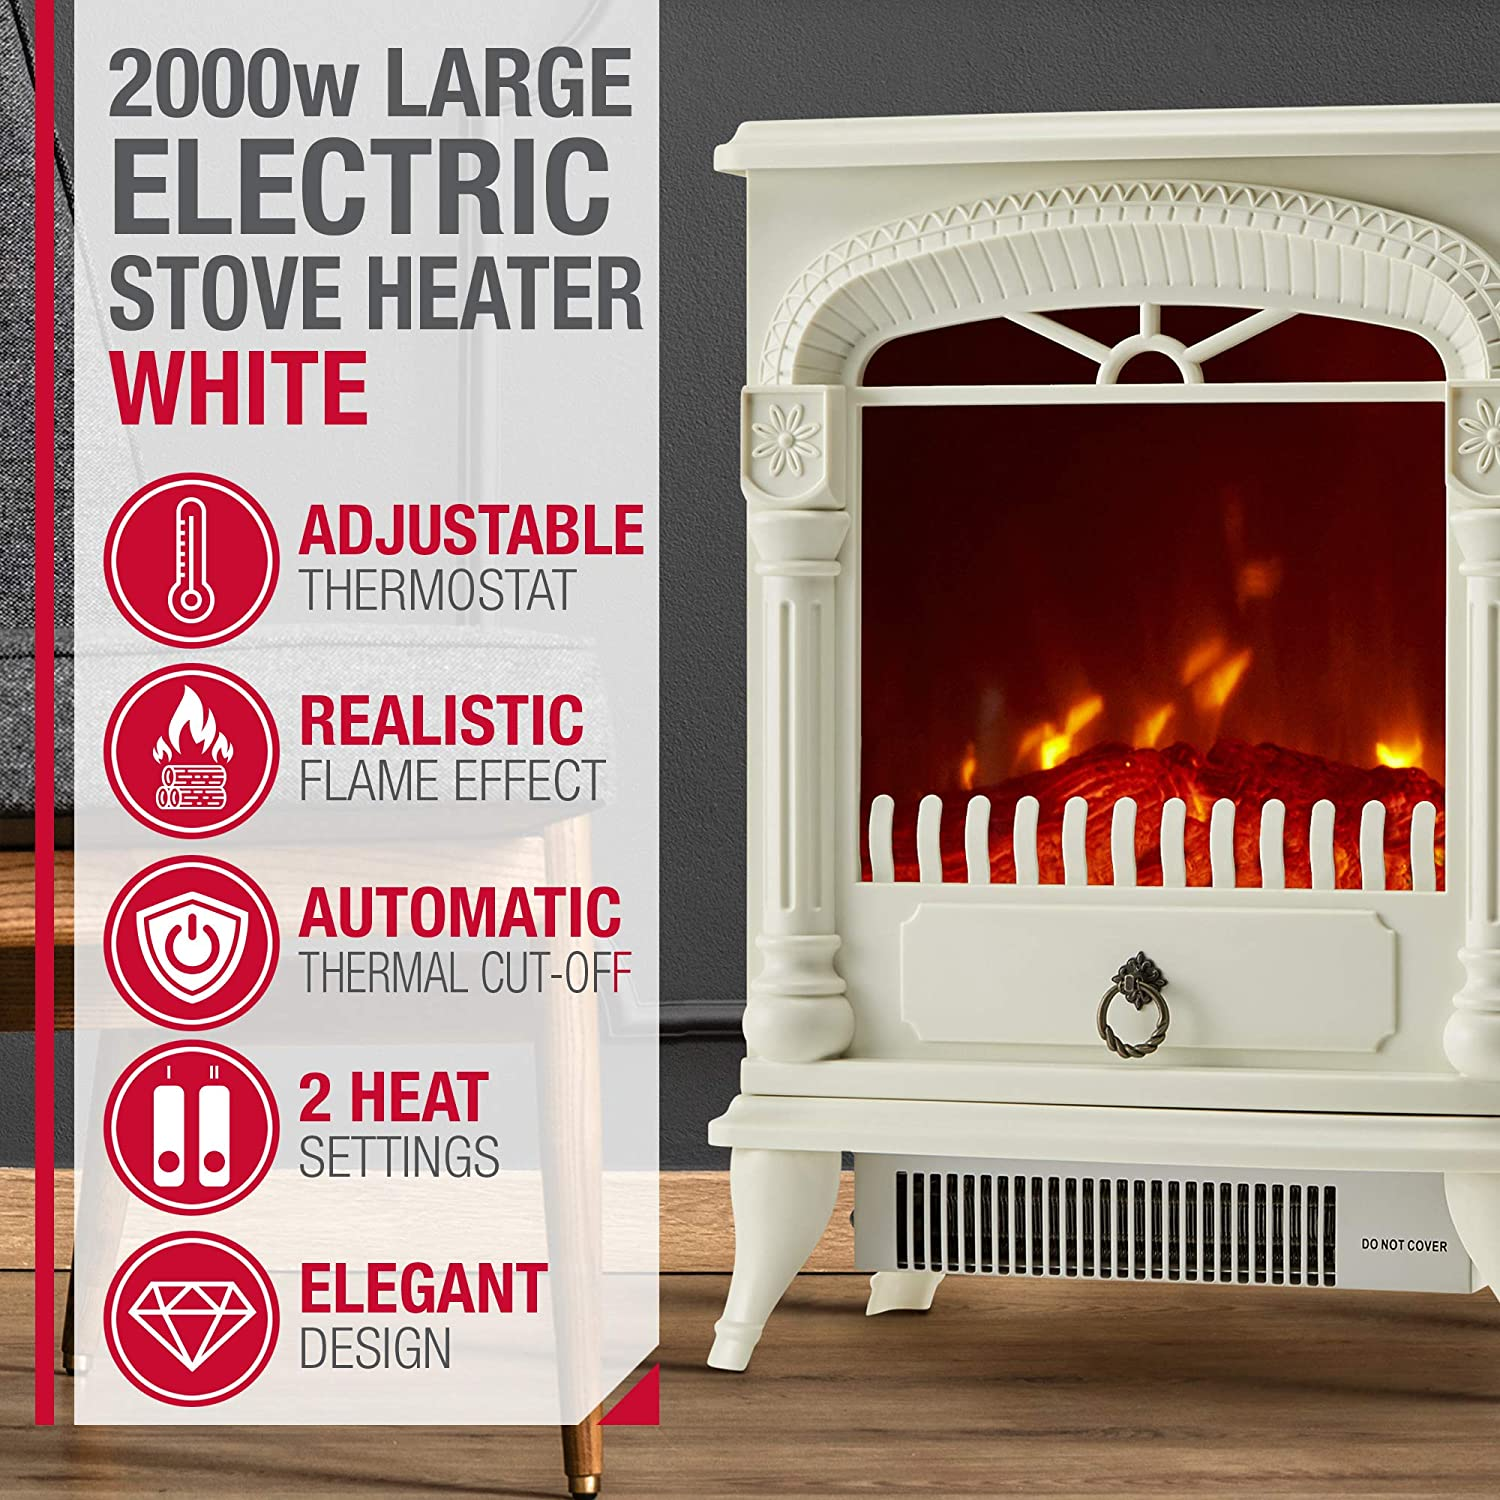 Freestanding NETTA Electric Fireplace Stove Heater 2000W with Fire Flame Effect